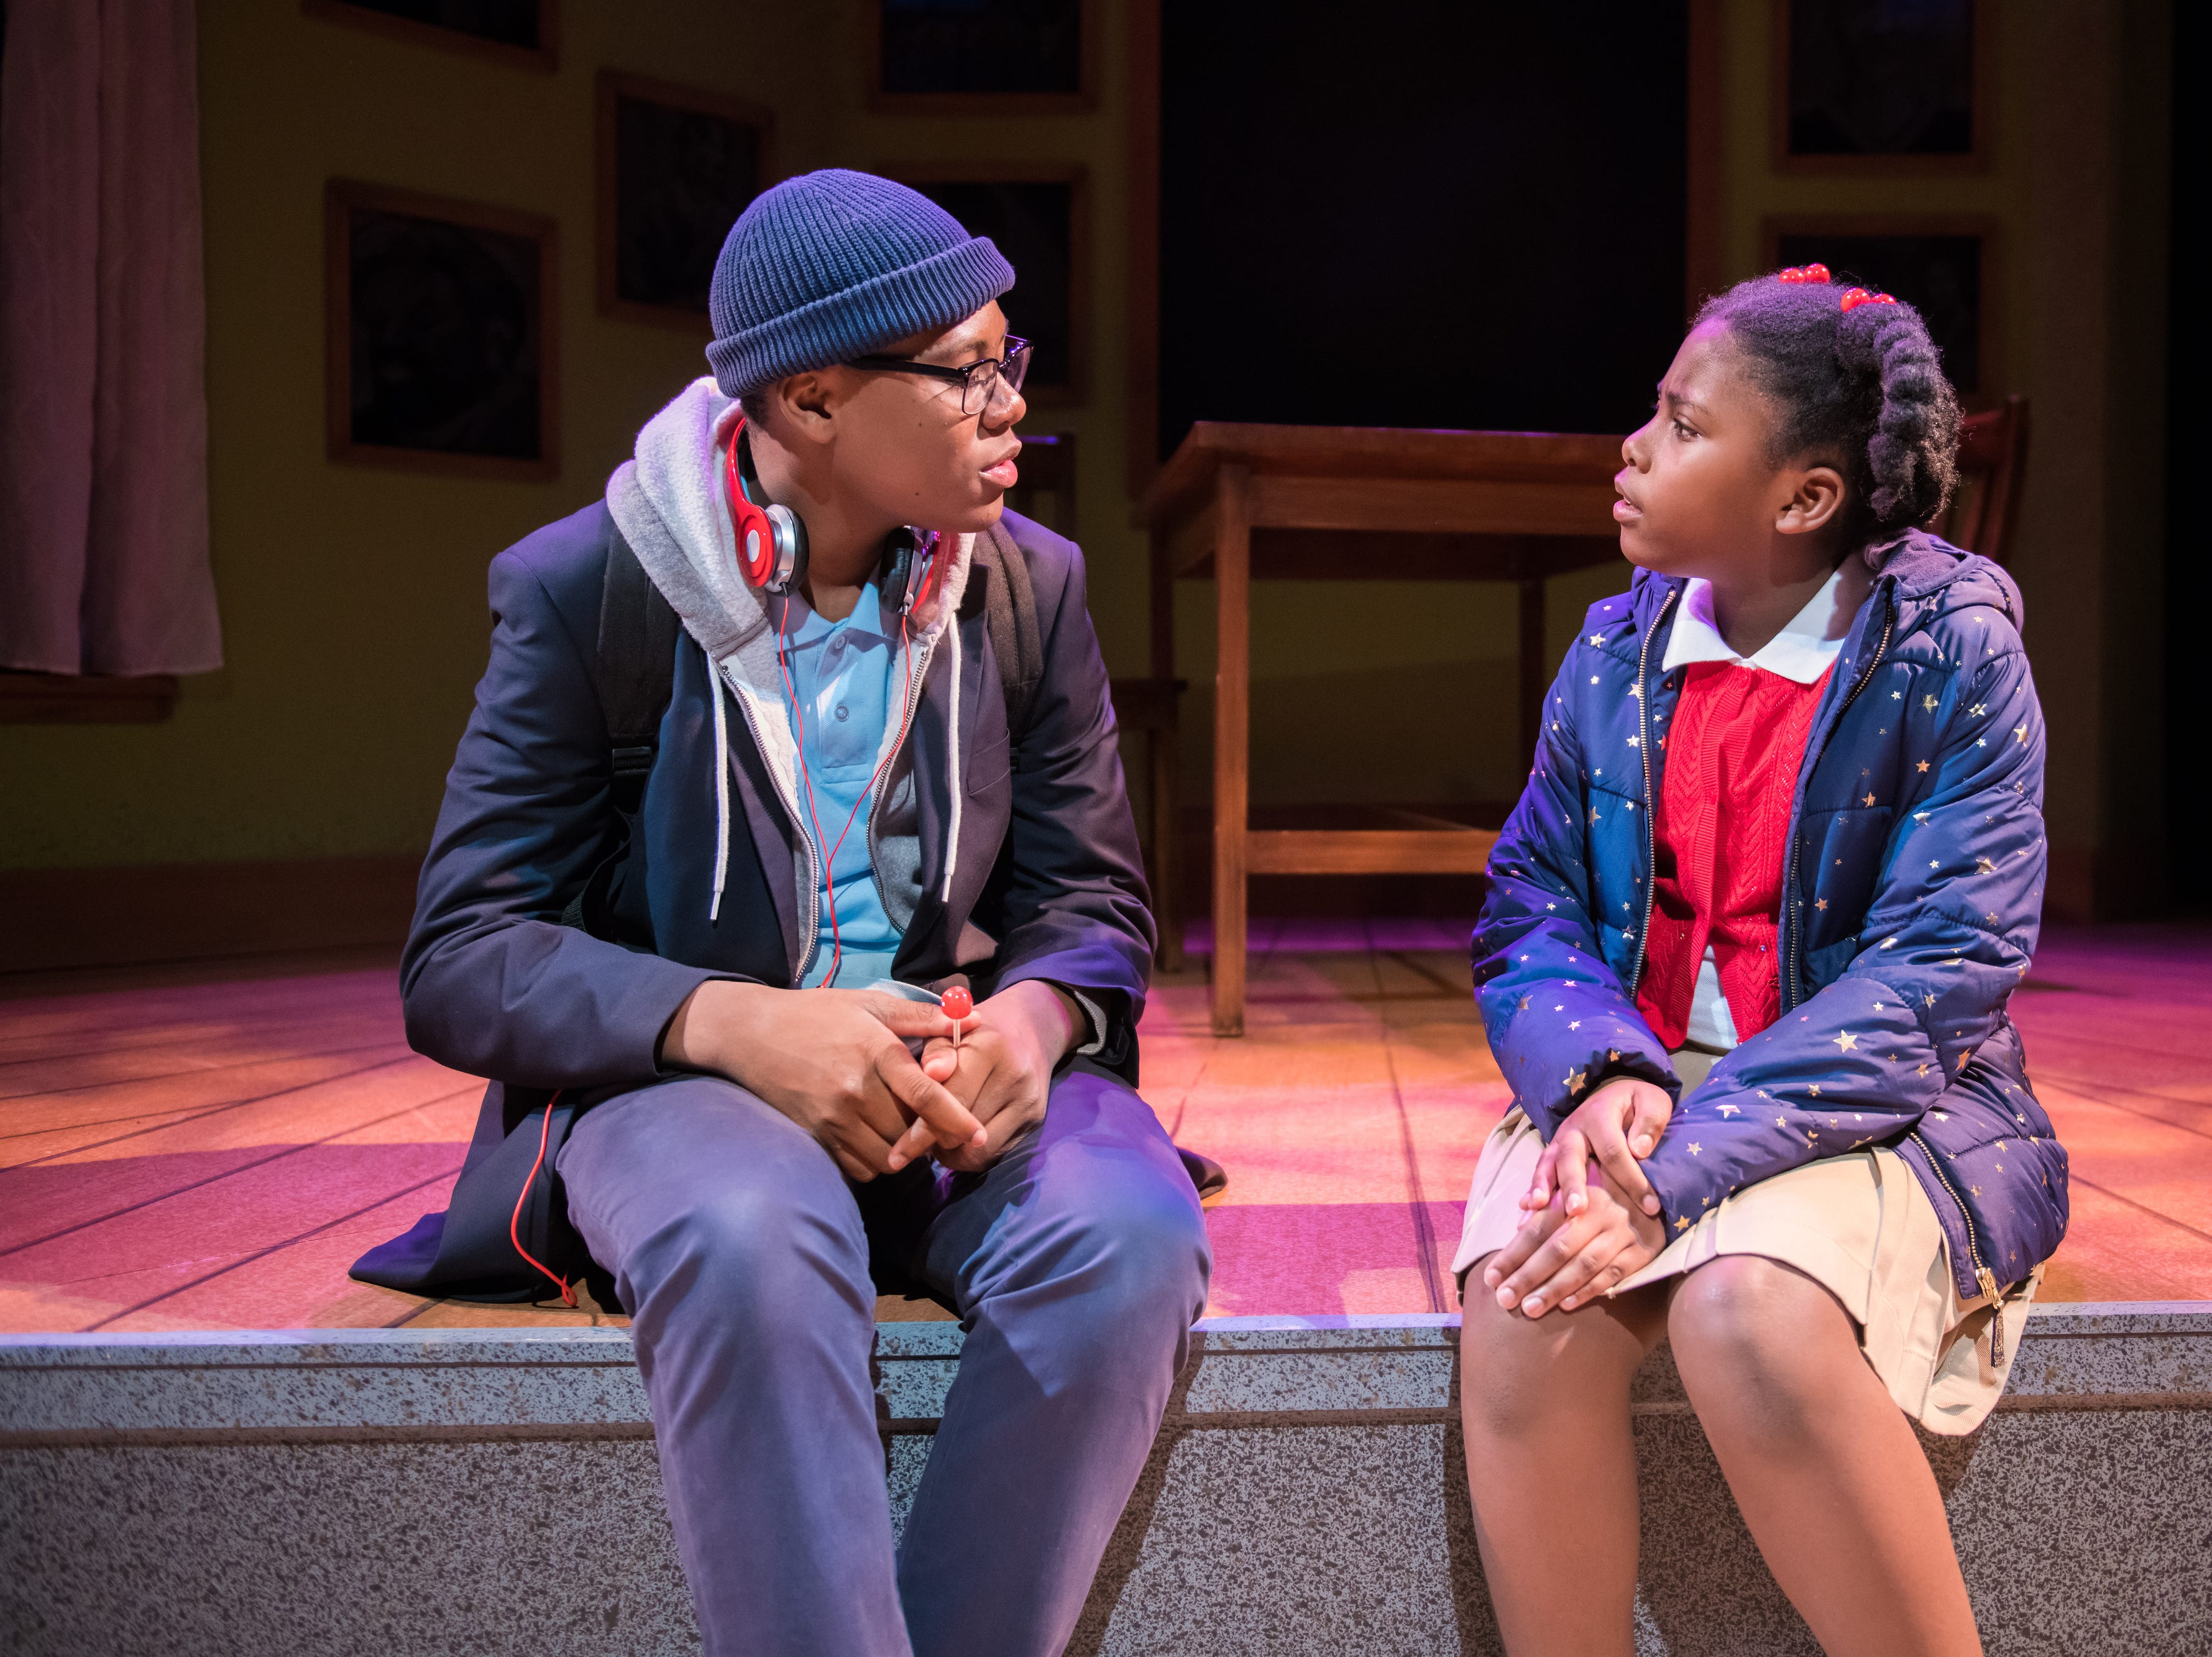 """Kamani Graham and Aura Grant perform in First Stage's production of """"Locomotion"""" by Jacqueline Woodson, which continues through Feb. 24 at the Milwaukee Youth Arts Center, 325 W. Walnut St."""